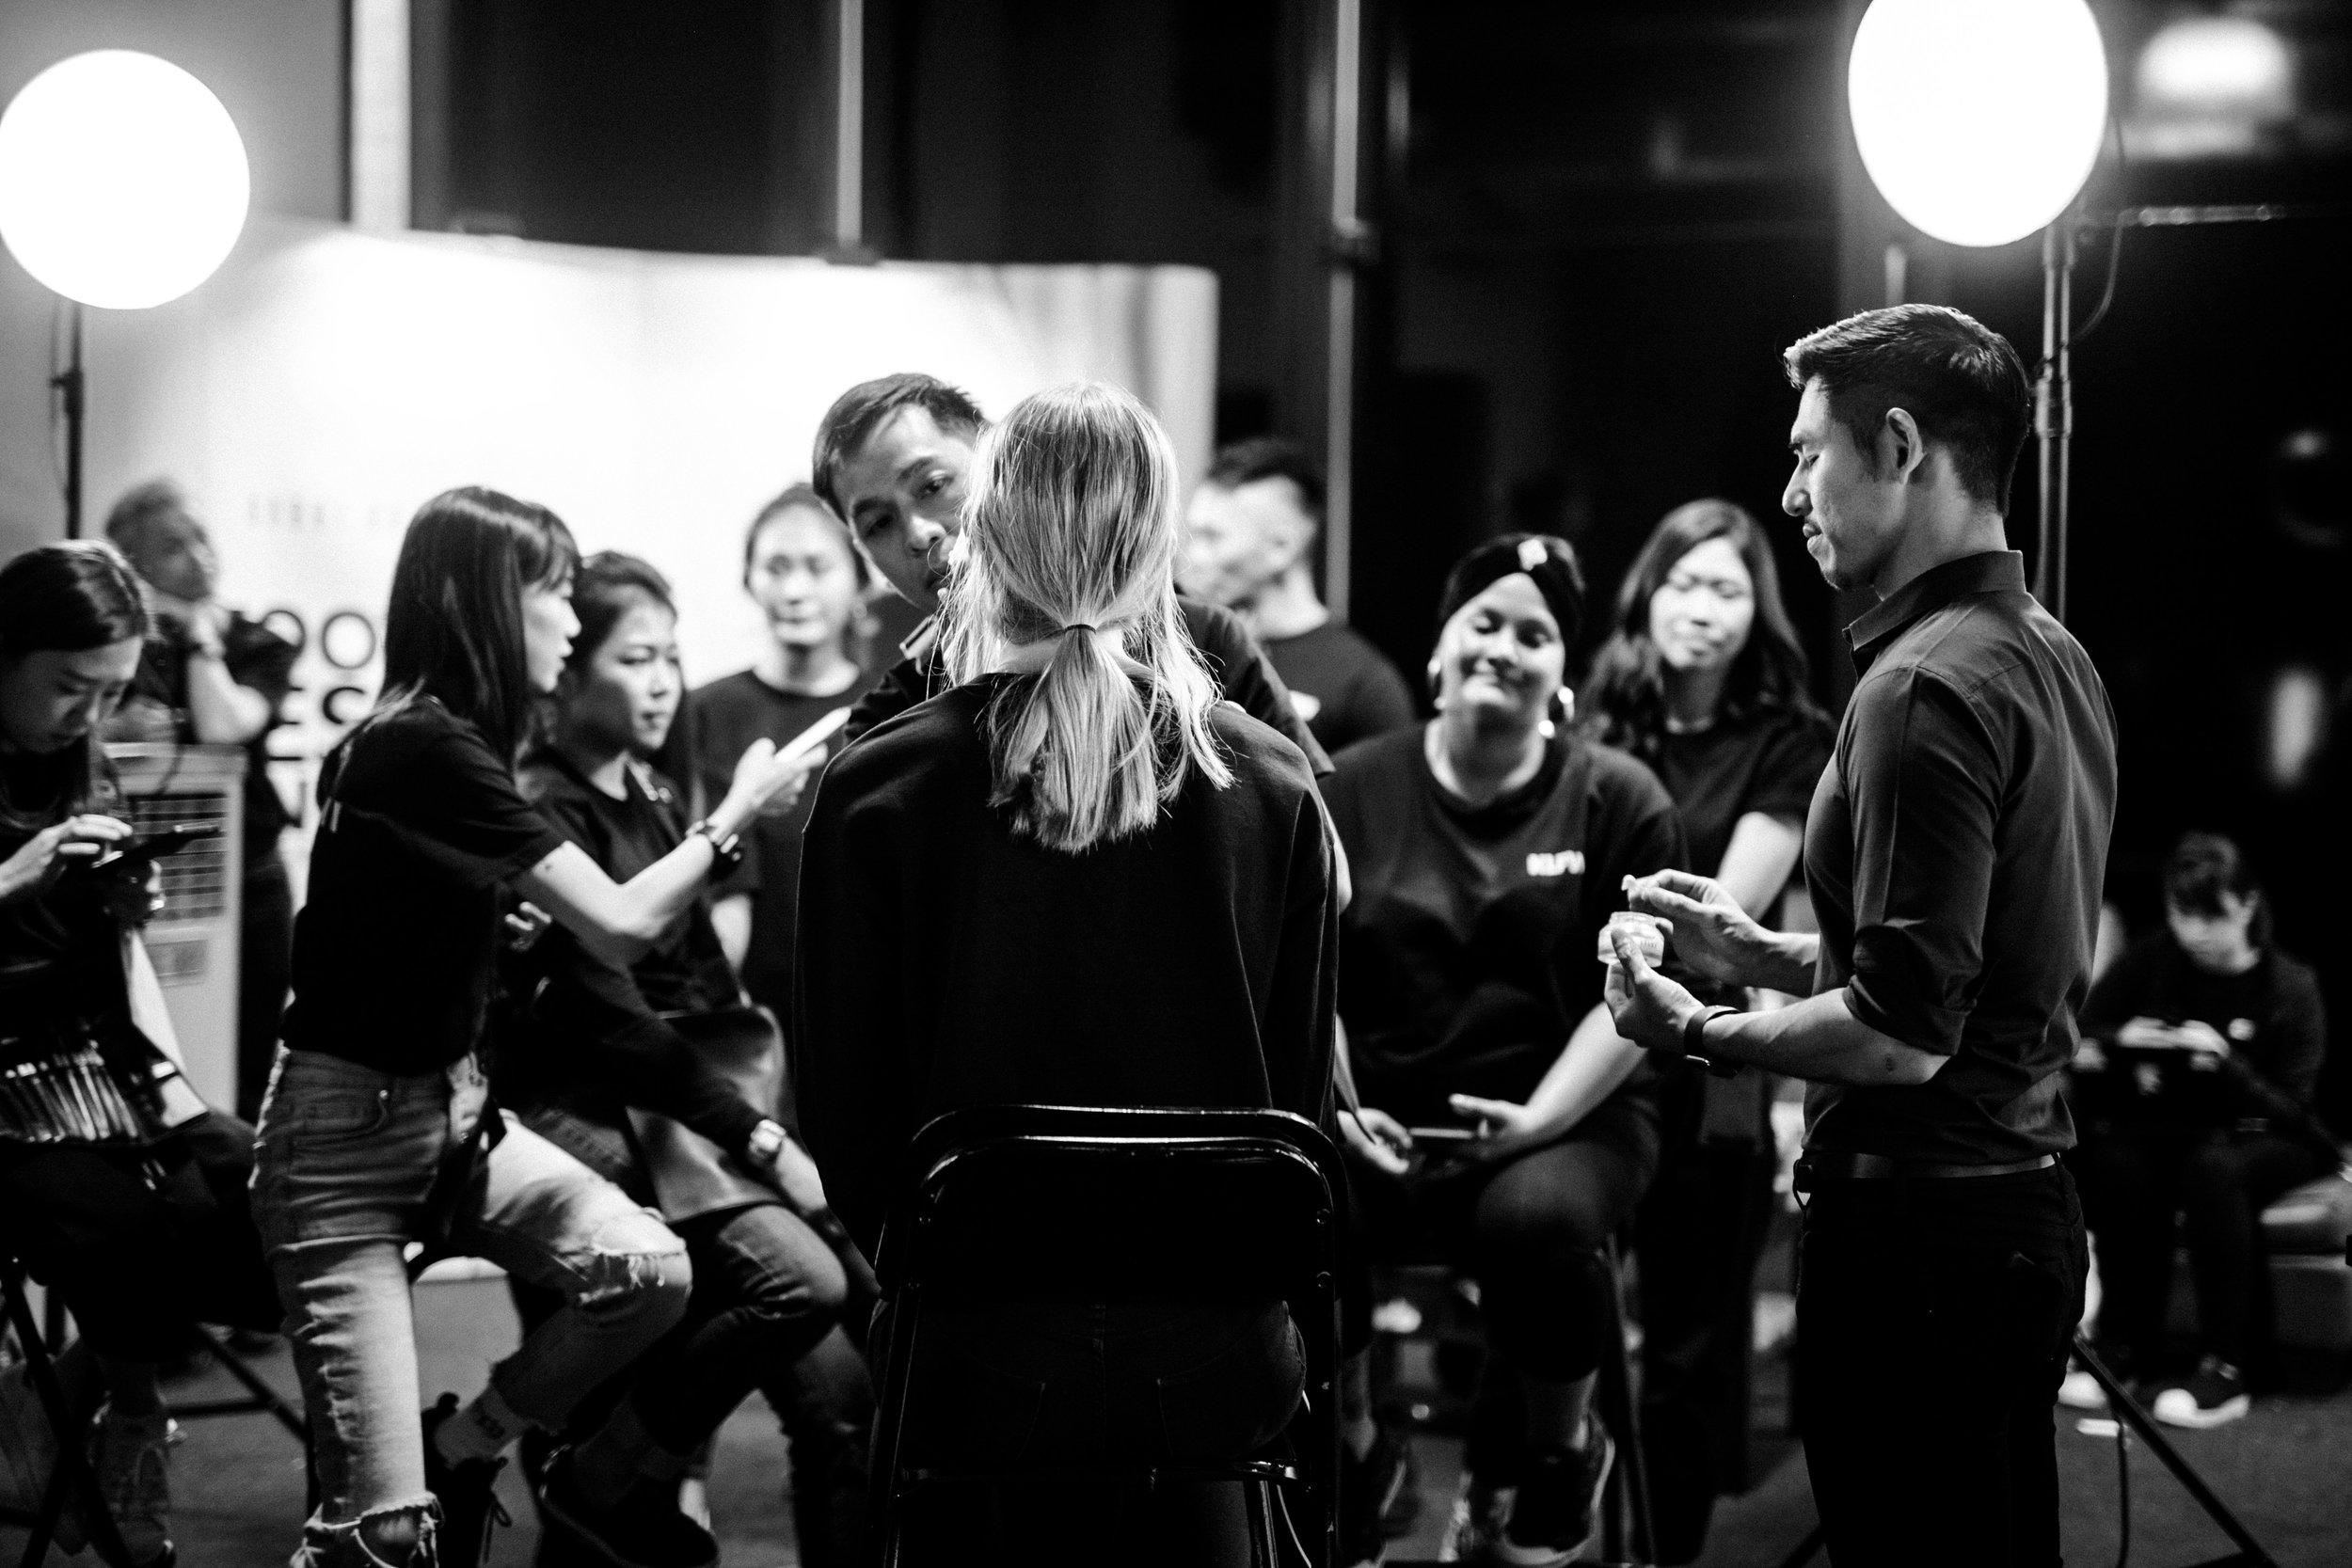 KLFW2018 - Day 3 - 0_043378 - Photo by All Is Amazing.jpg